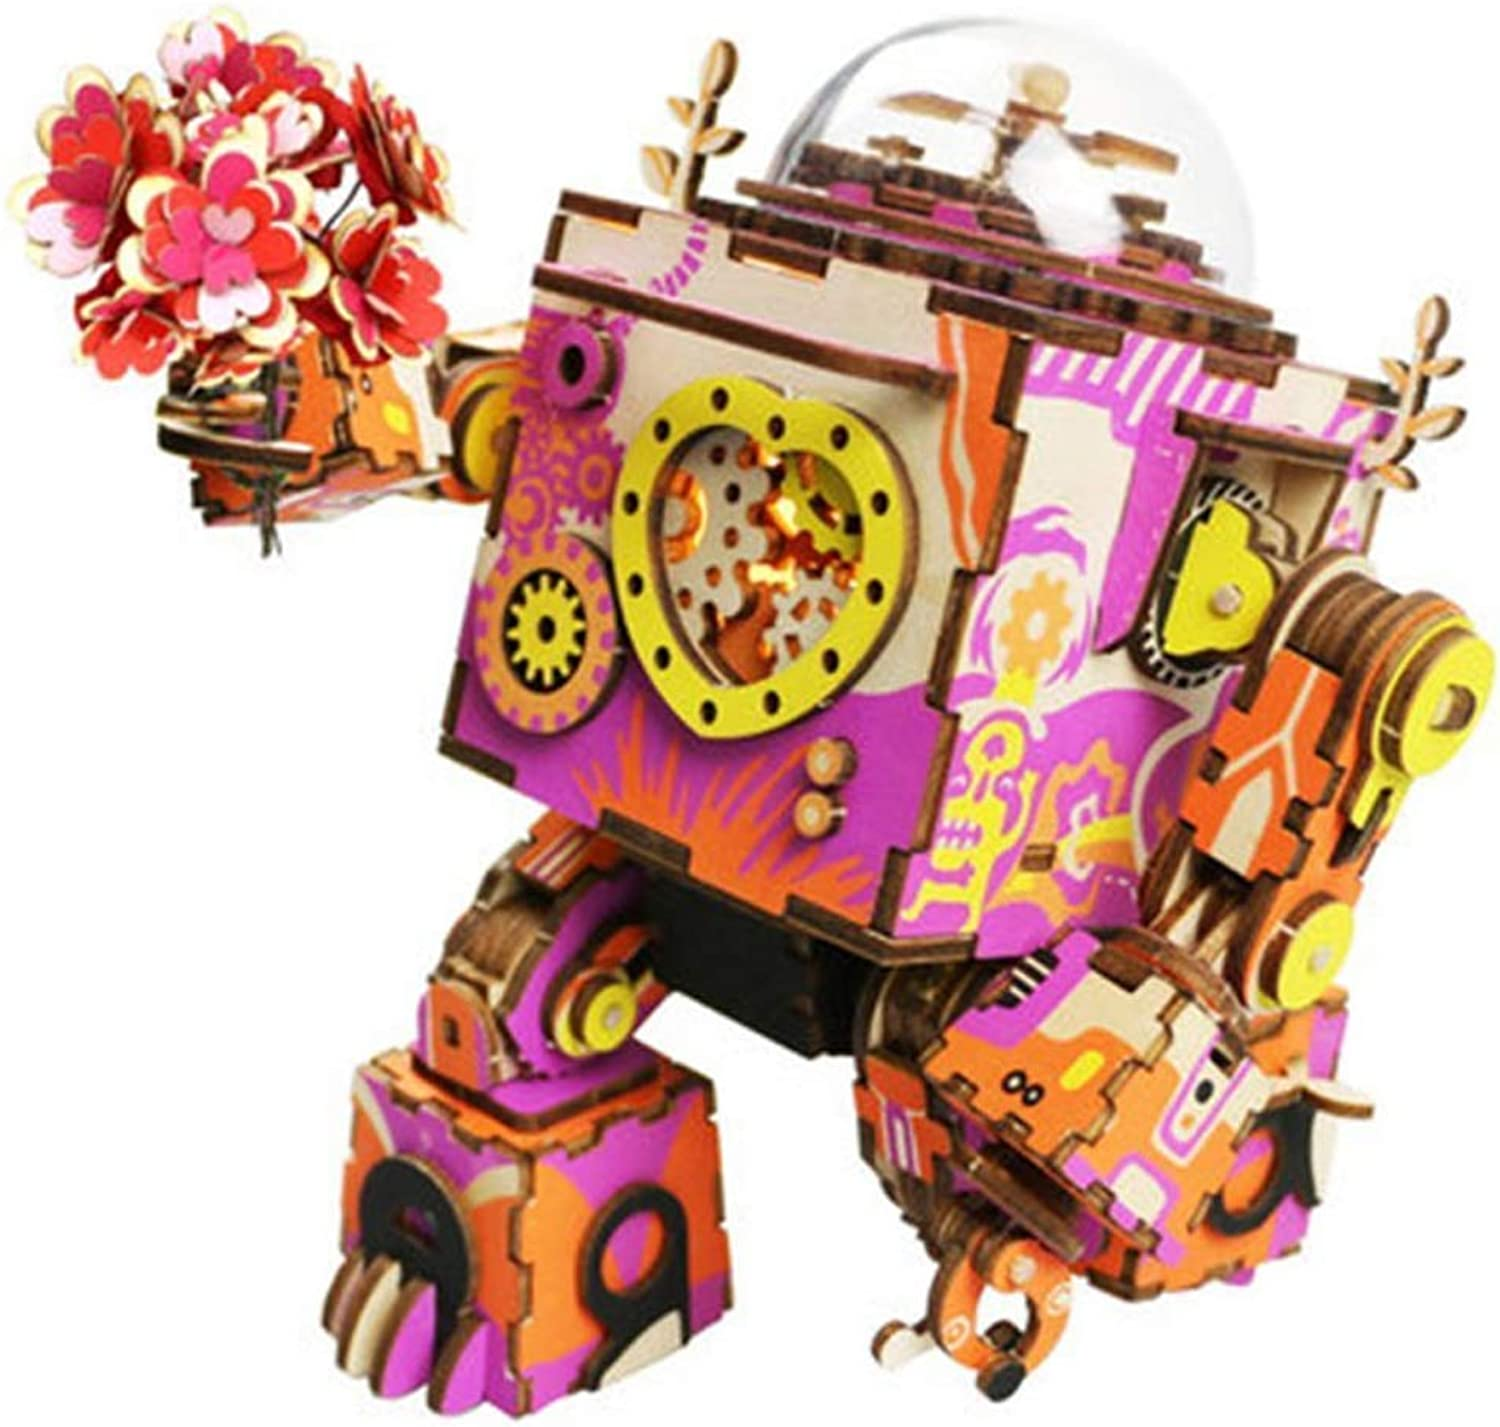 ZYX Wooden Music Box  Diy 3D Cutting Wooden Puzzle Steampunk Robot Model Wooden Gear Lead Light Music Box Christmas Birthday Valentine's Day Creative Gifts